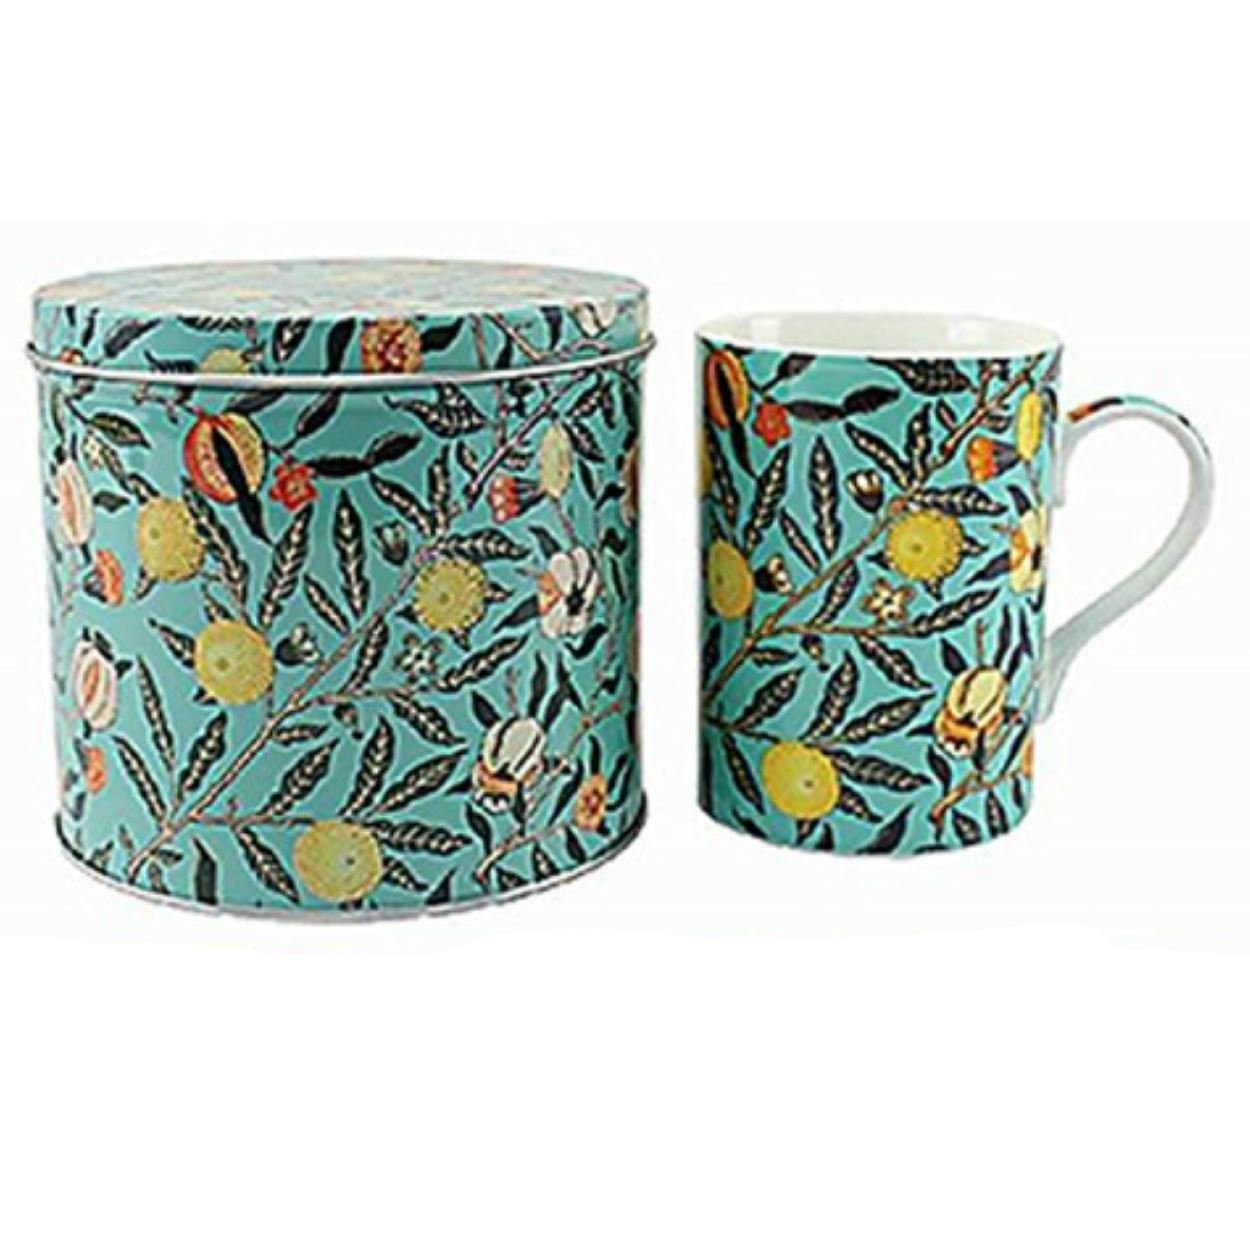 Oriental Paisley Set Of 2 Fine China Mugs By Leonardo